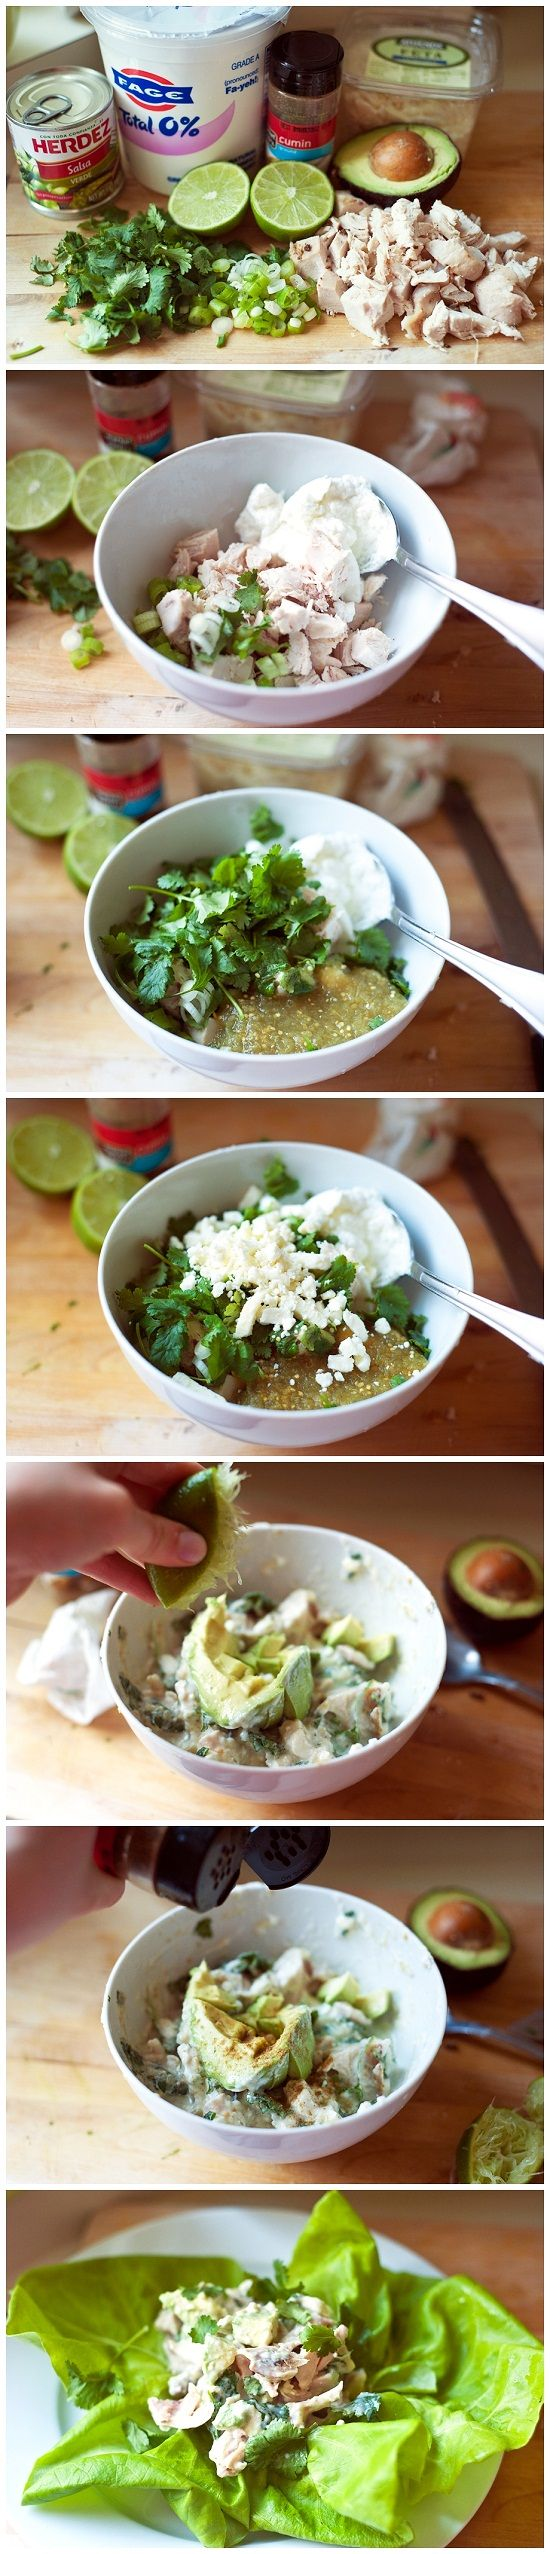 17 Best ideas about Guacamole Chicken on Pinterest | Avocado chicken ...